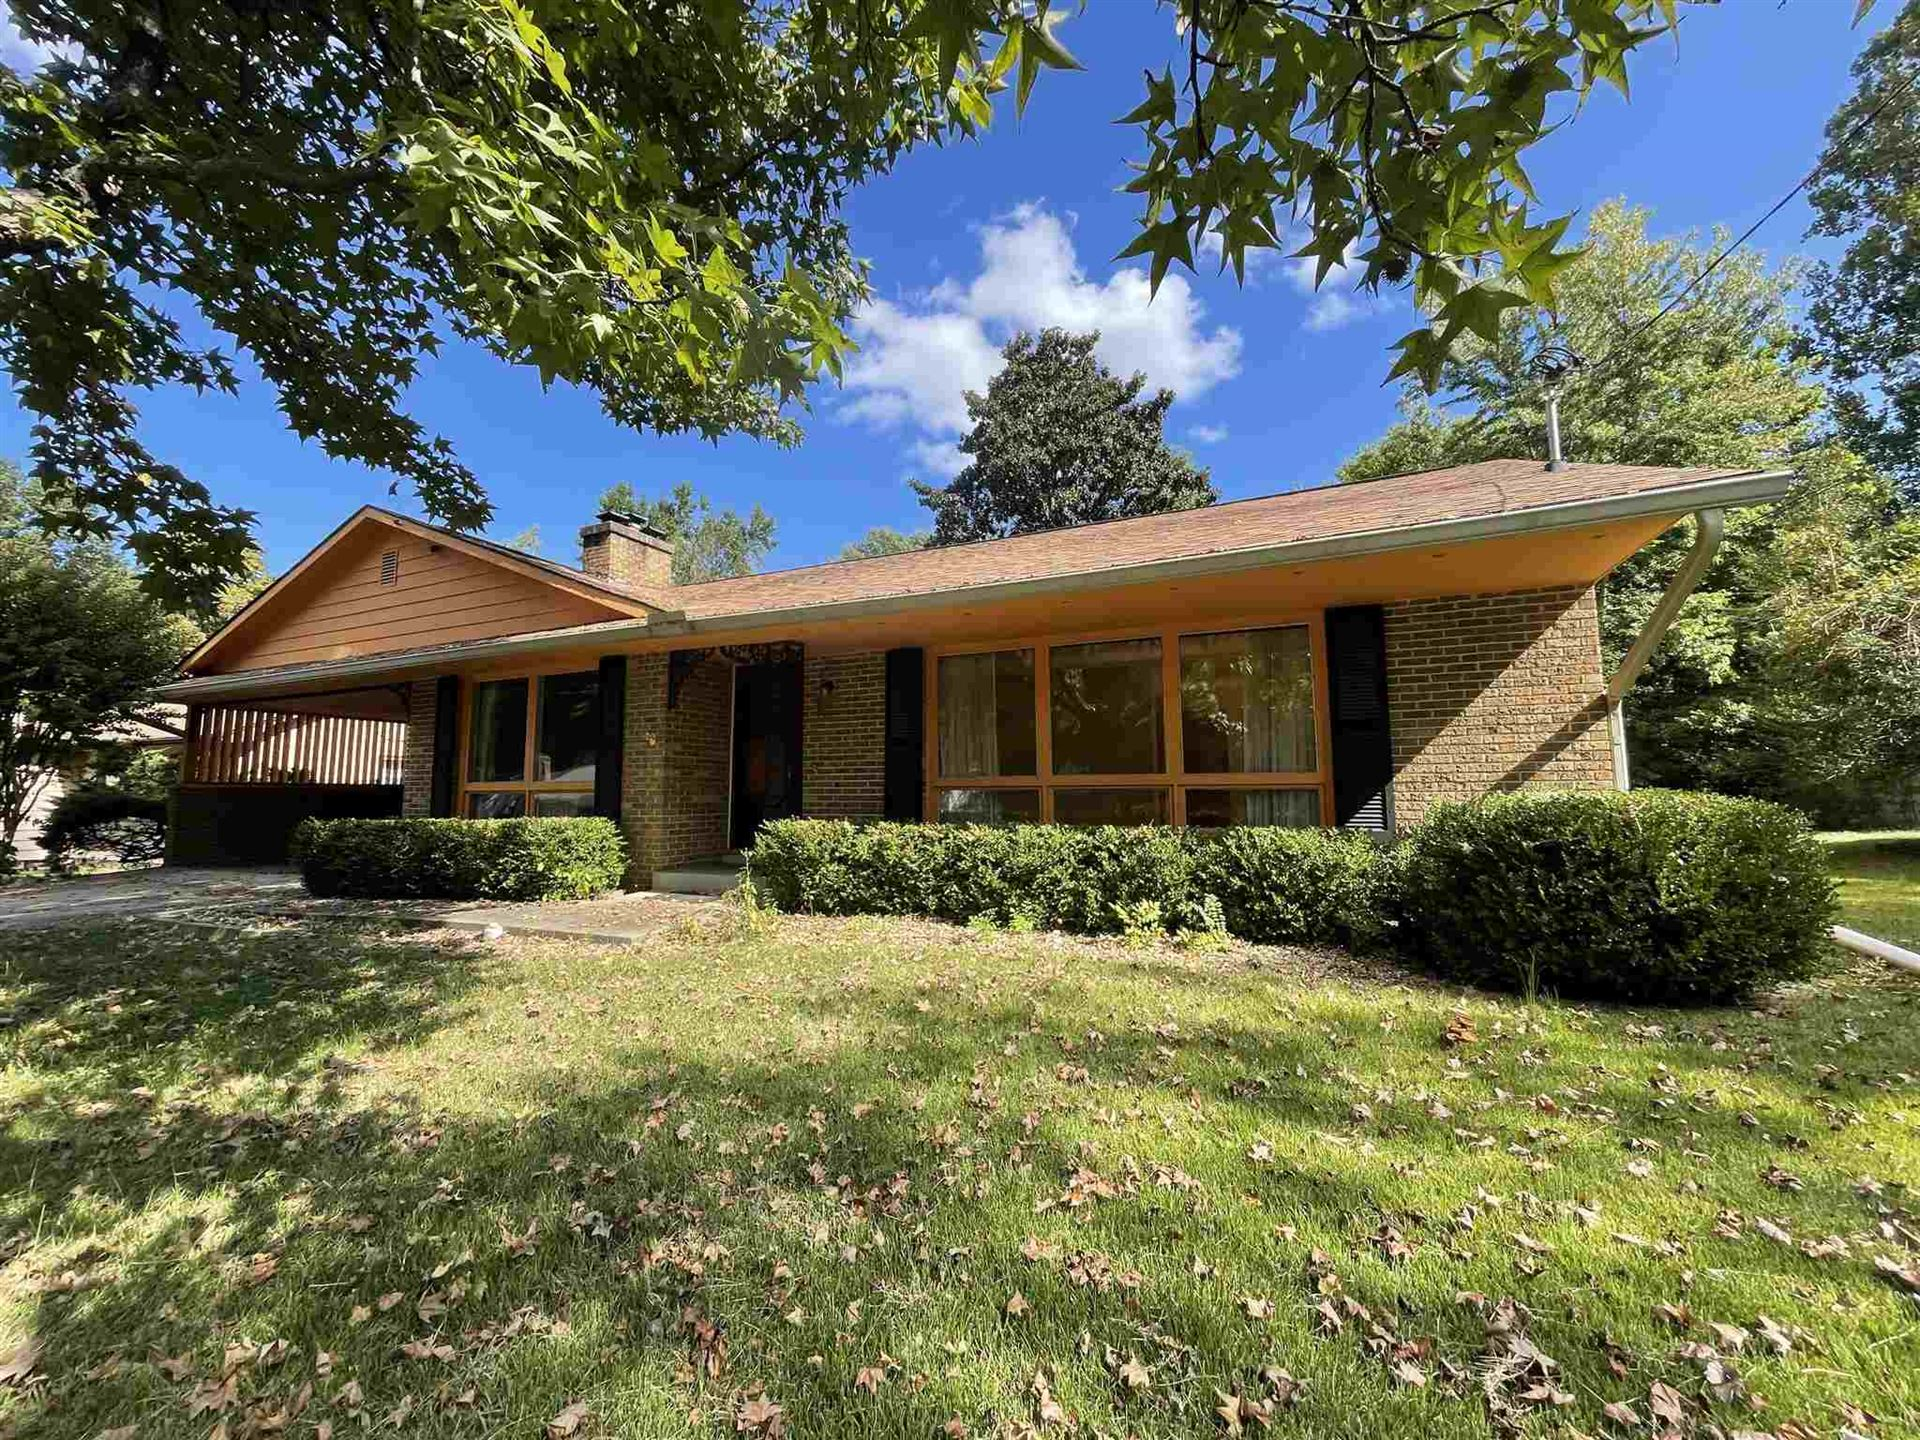 503 S ORCHARD, Carbondale, IL 62901 - MLS#: EB441687